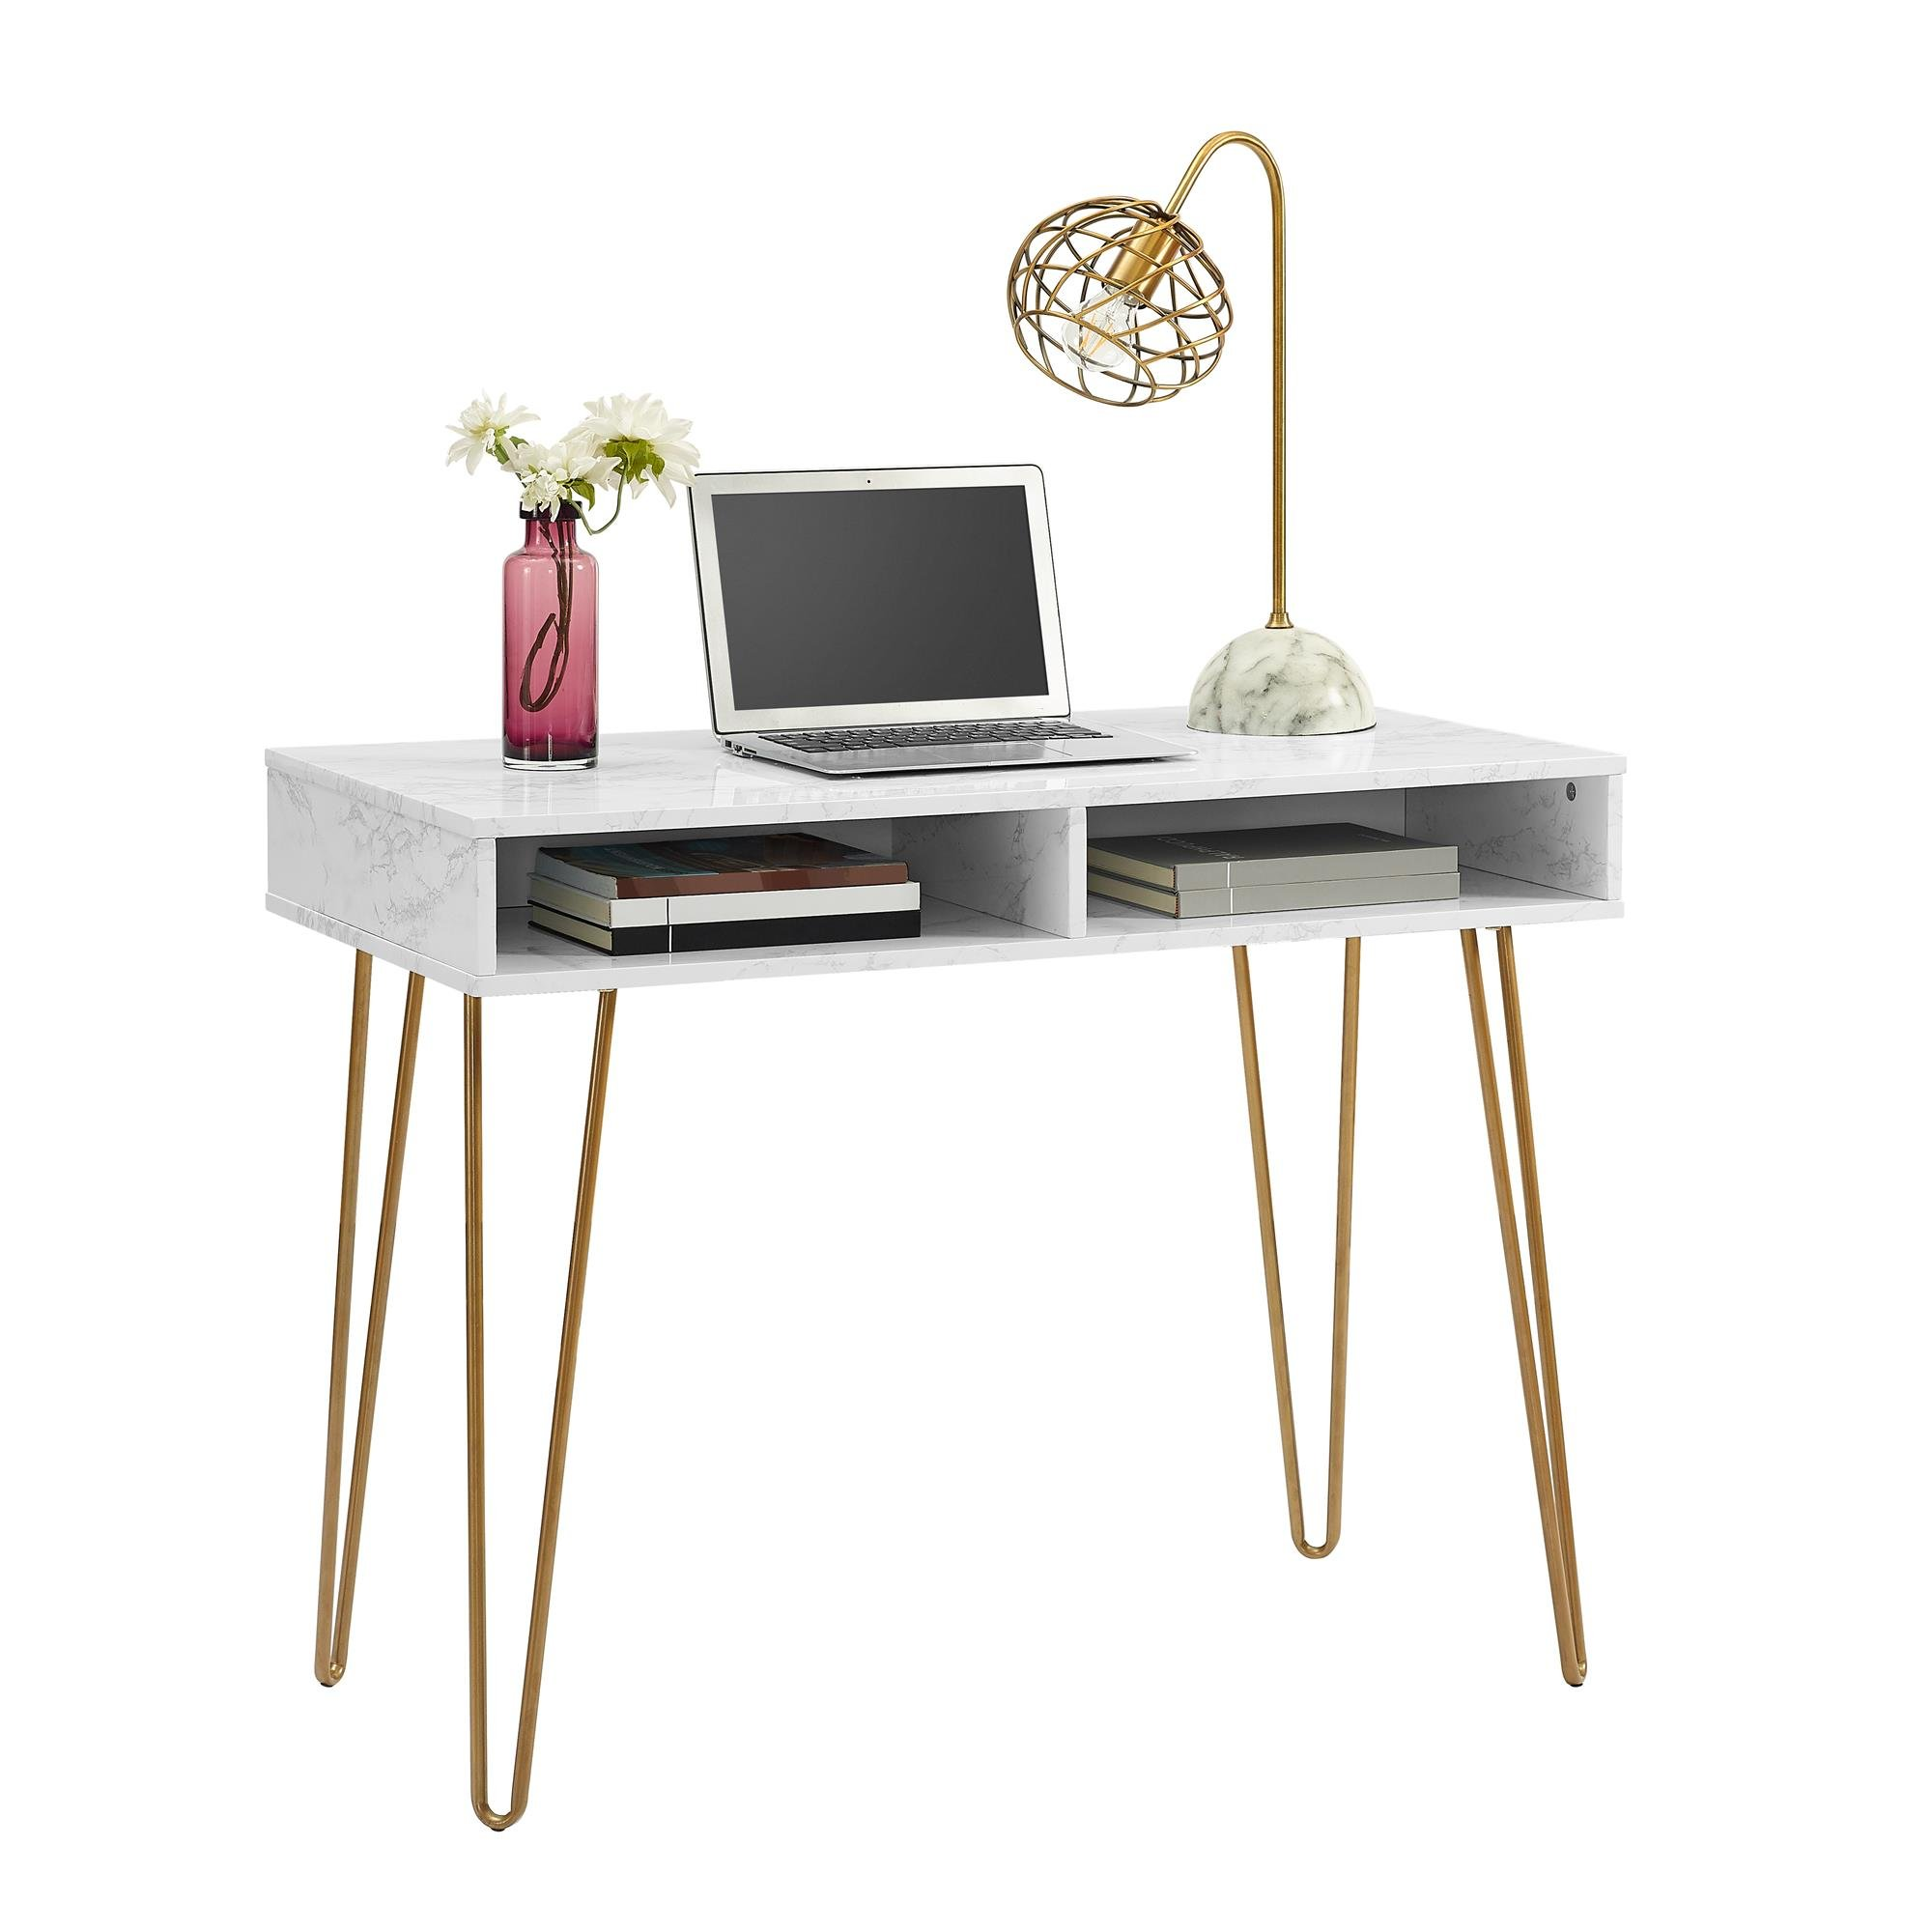 Novogratz Athena Computer Desk with Storage, White Marble by Novogratz